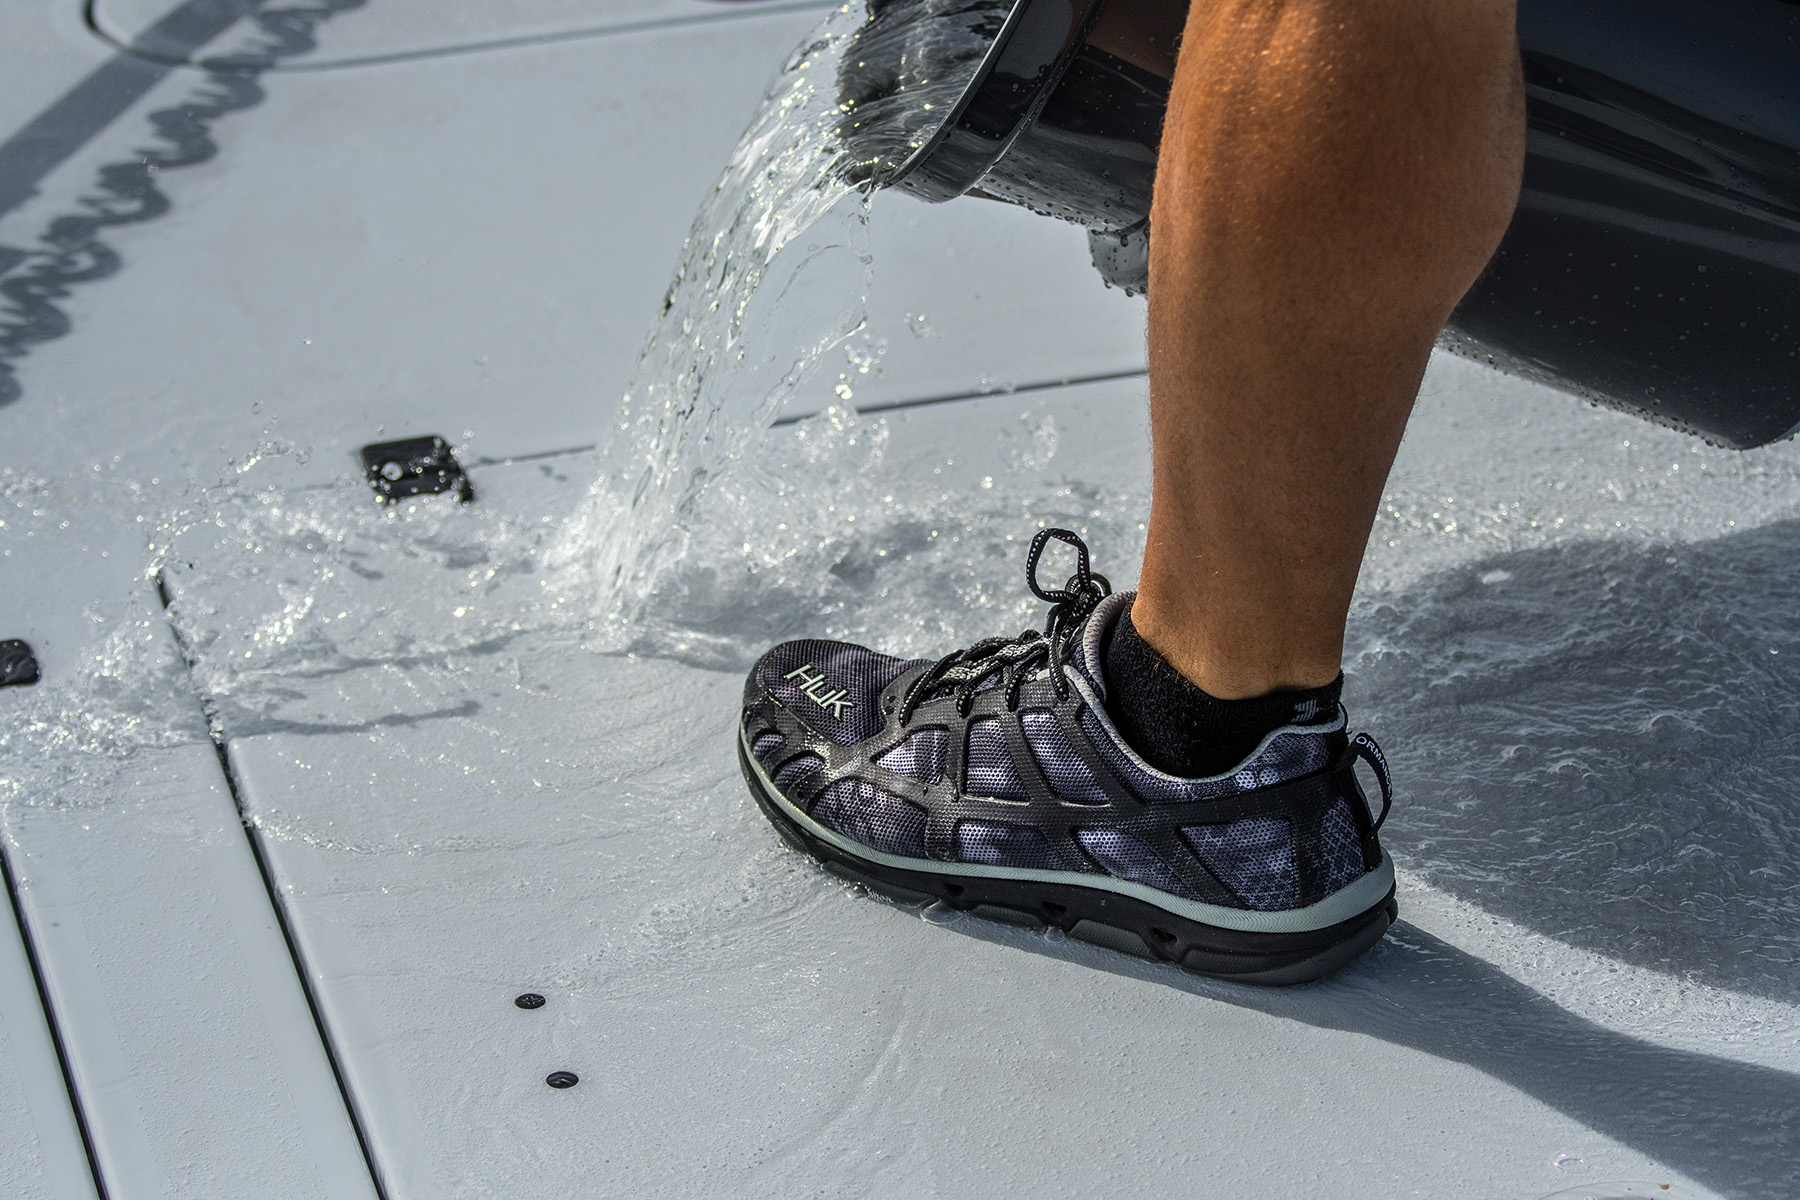 tom-rowland-wears-his-huk-shoes-on-his-yellowfin-boat-while-fishing-with-saltwater-experience-on-waypoint-tv